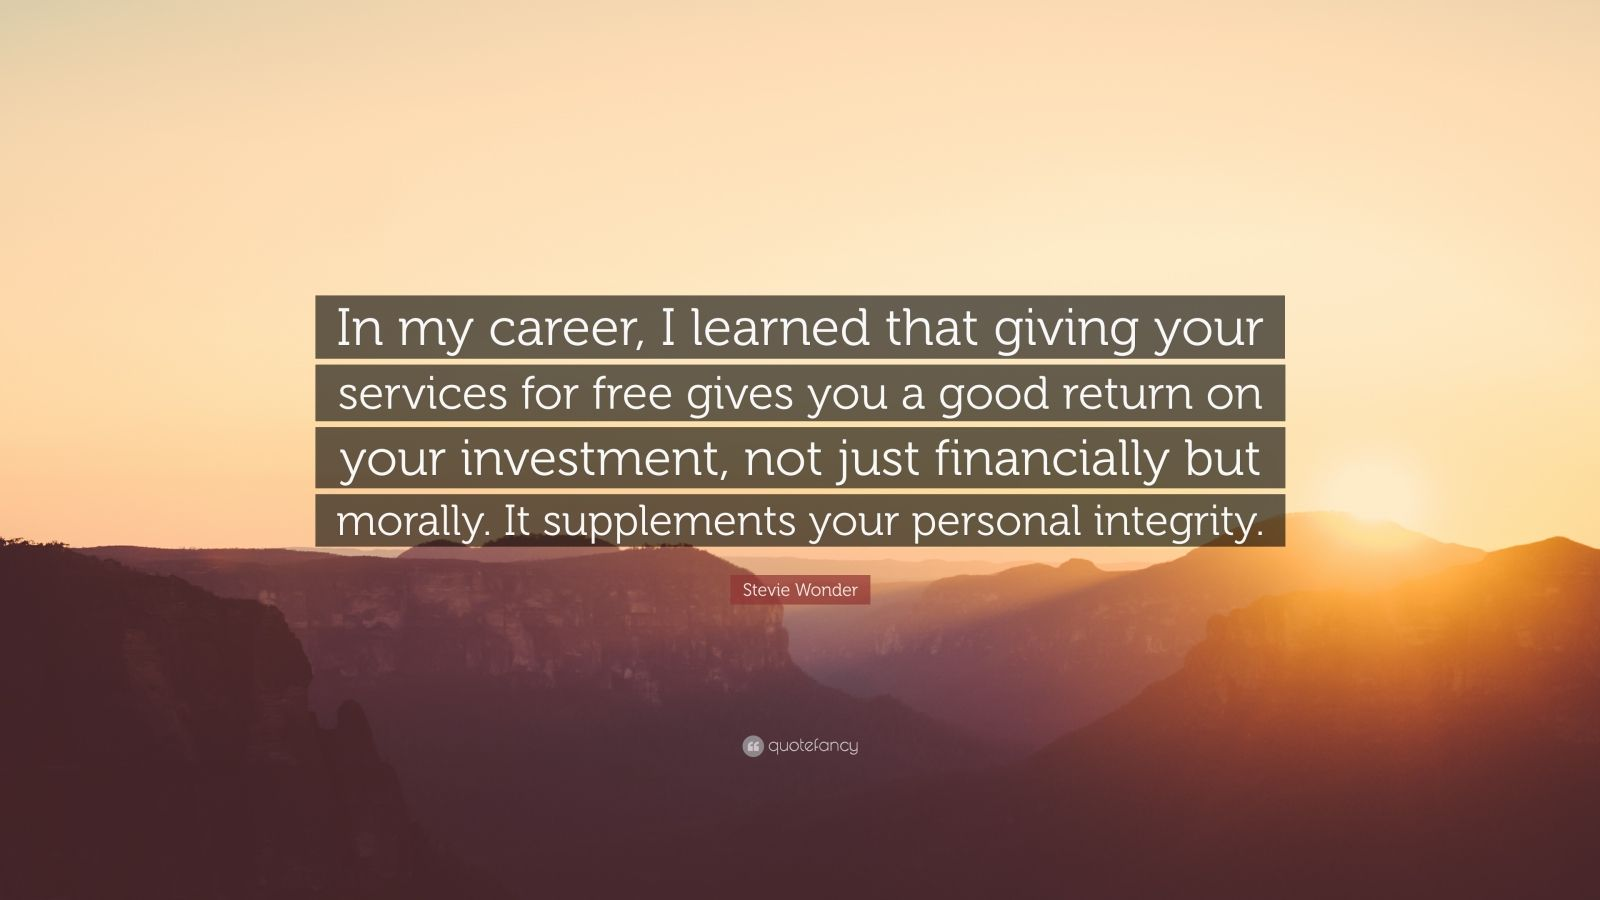 """Stevie Wonder Quote: """"In my career, I learned that giving your services for free gives you a good return on your investment, not just financially but morally. It supplements your personal integrity."""""""